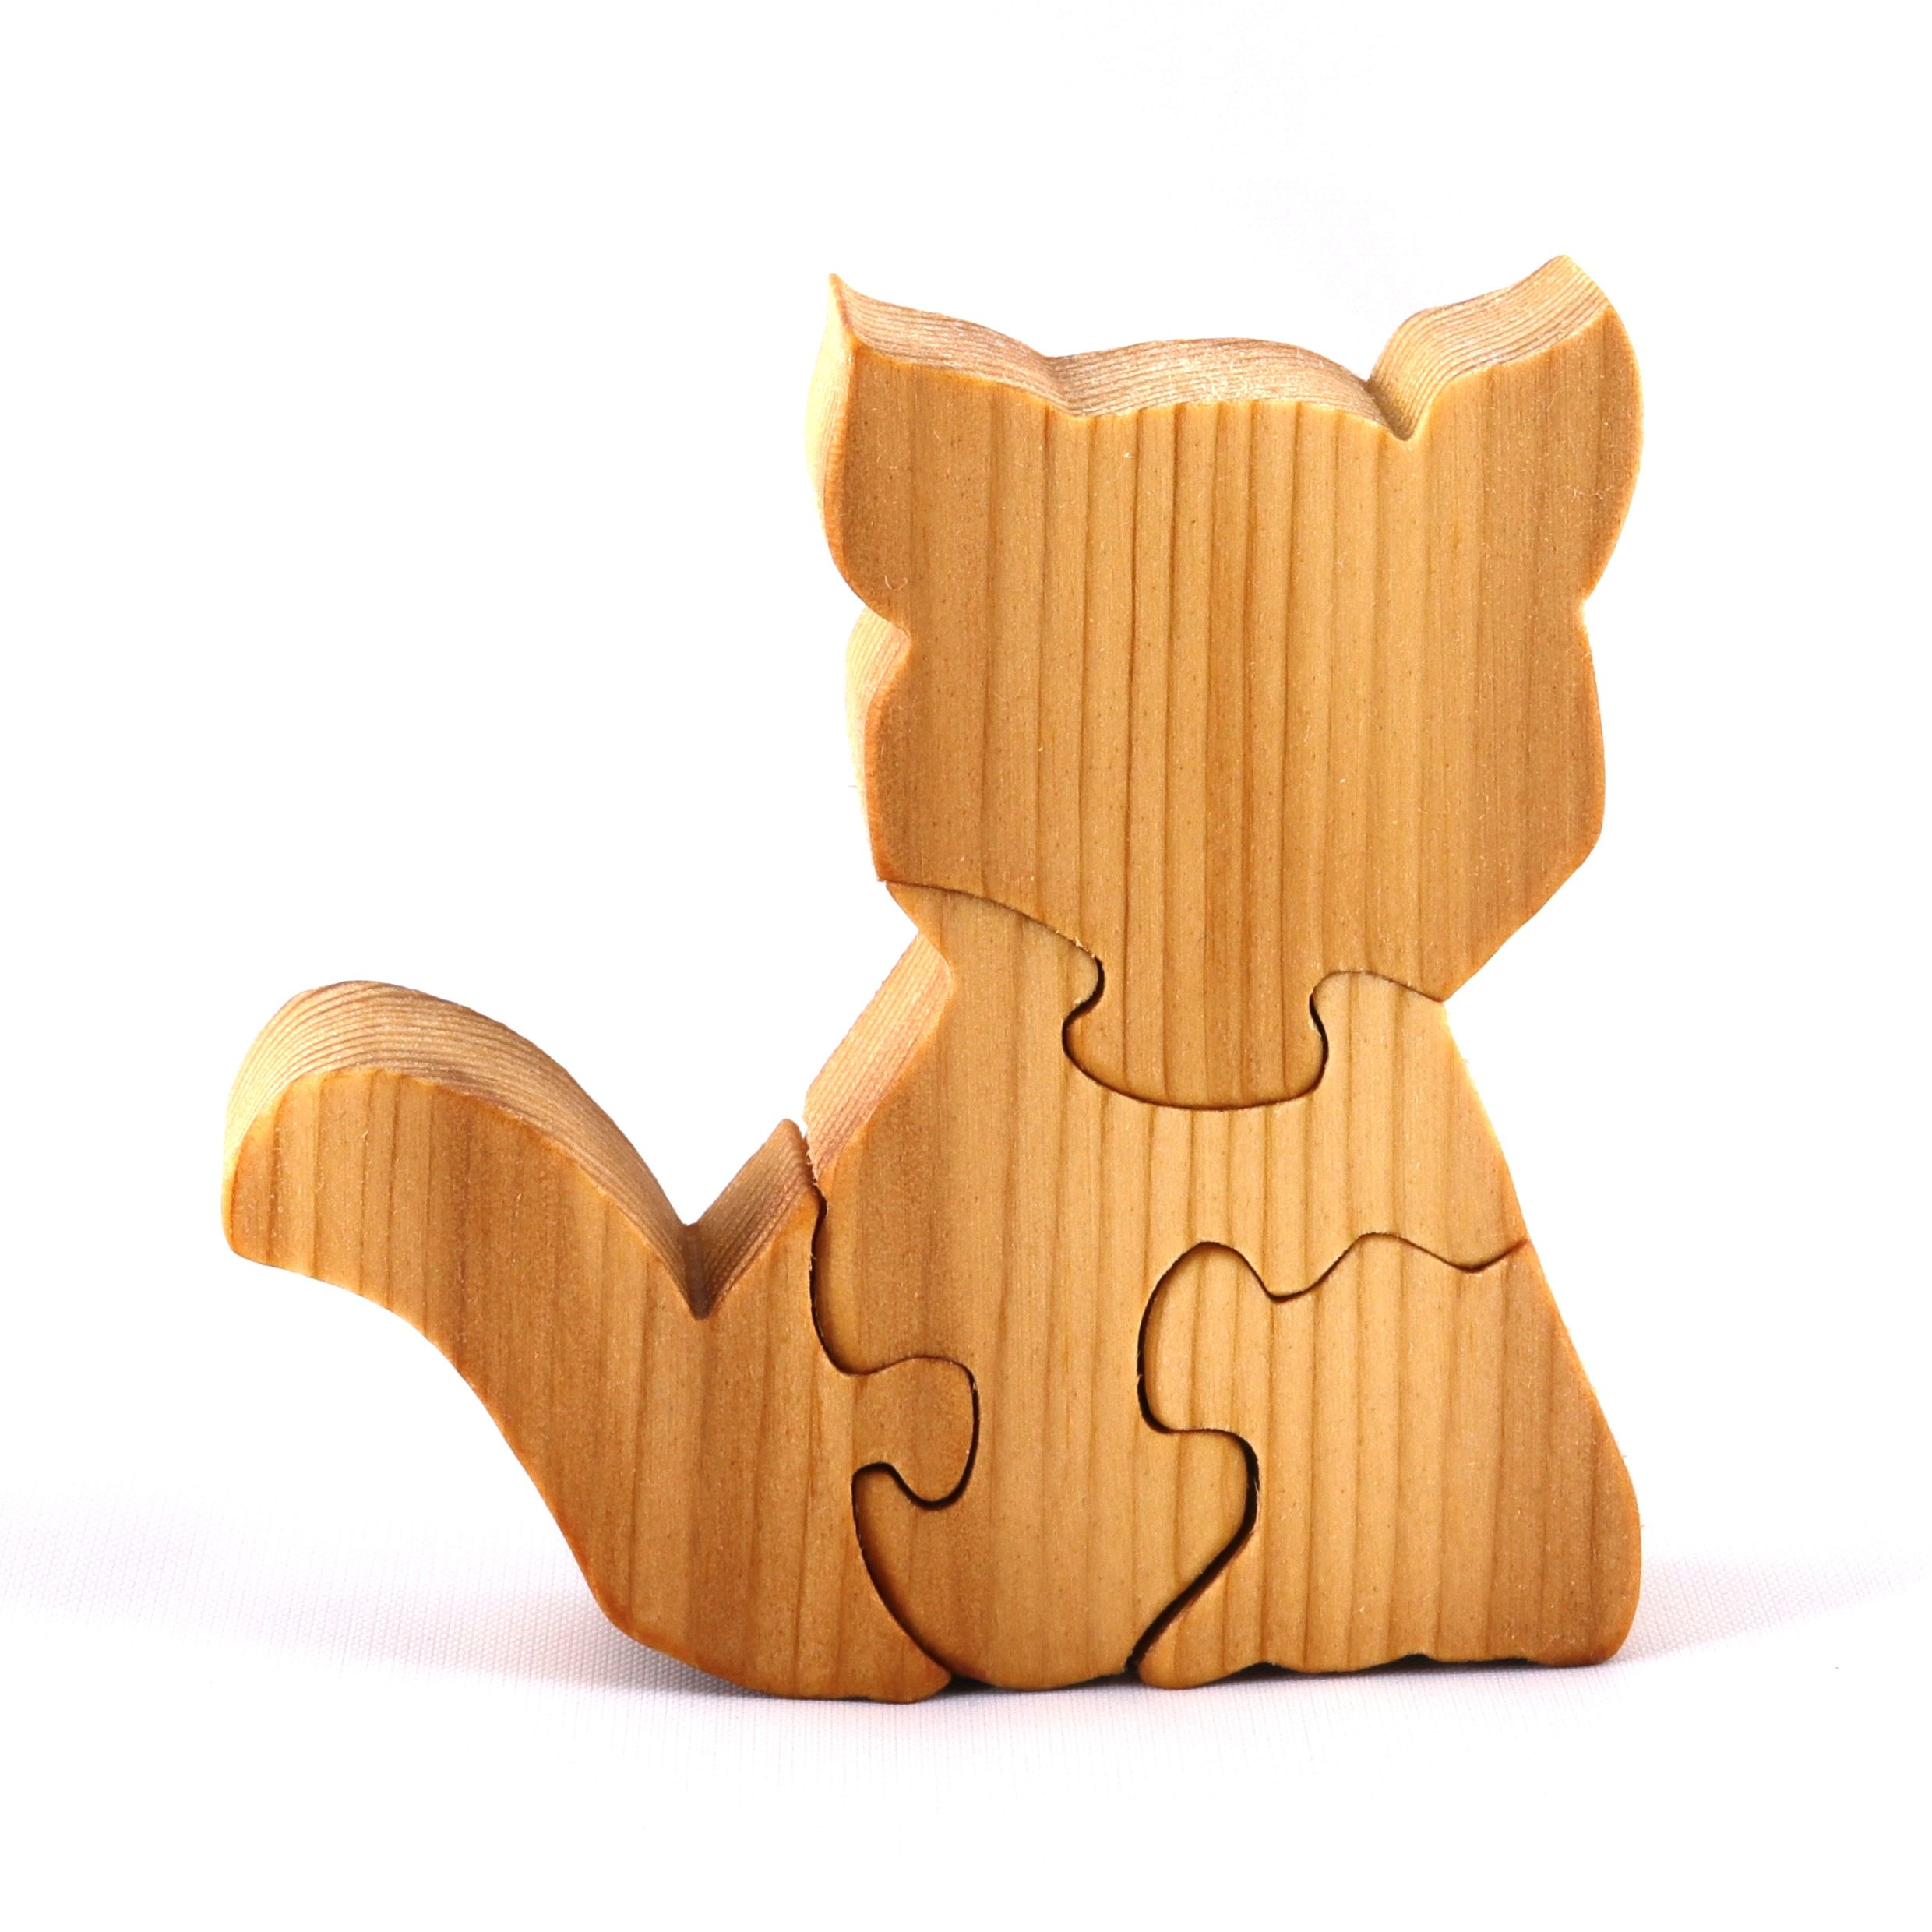 Handmade Wooden Kitten Puzzle Toy, A Cute Simple Four Part ...